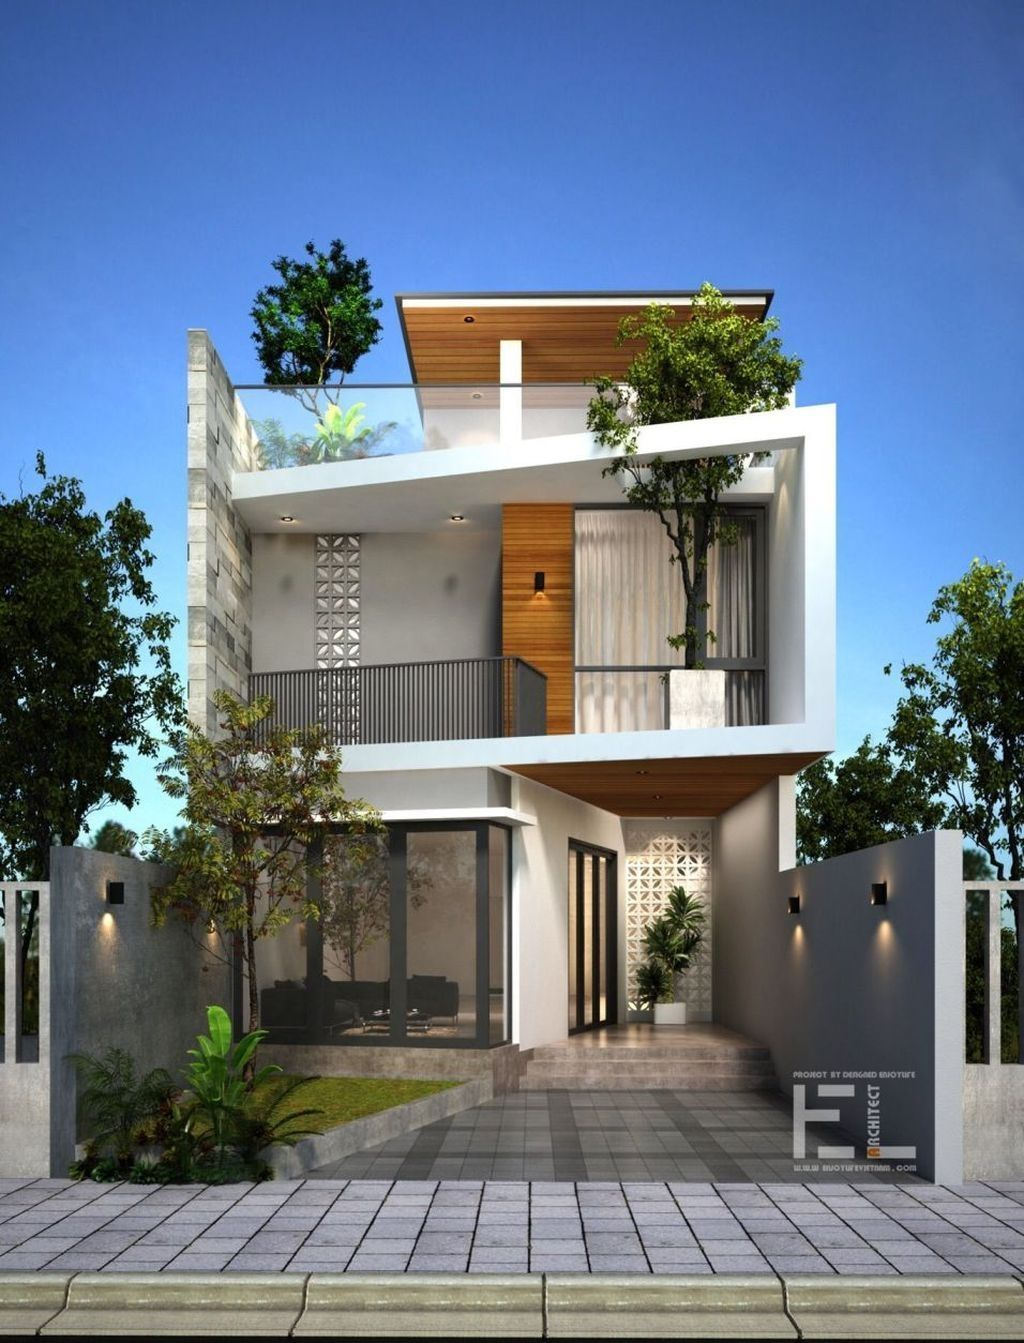 Inspiring Modern House Architecture Design Ideas 03